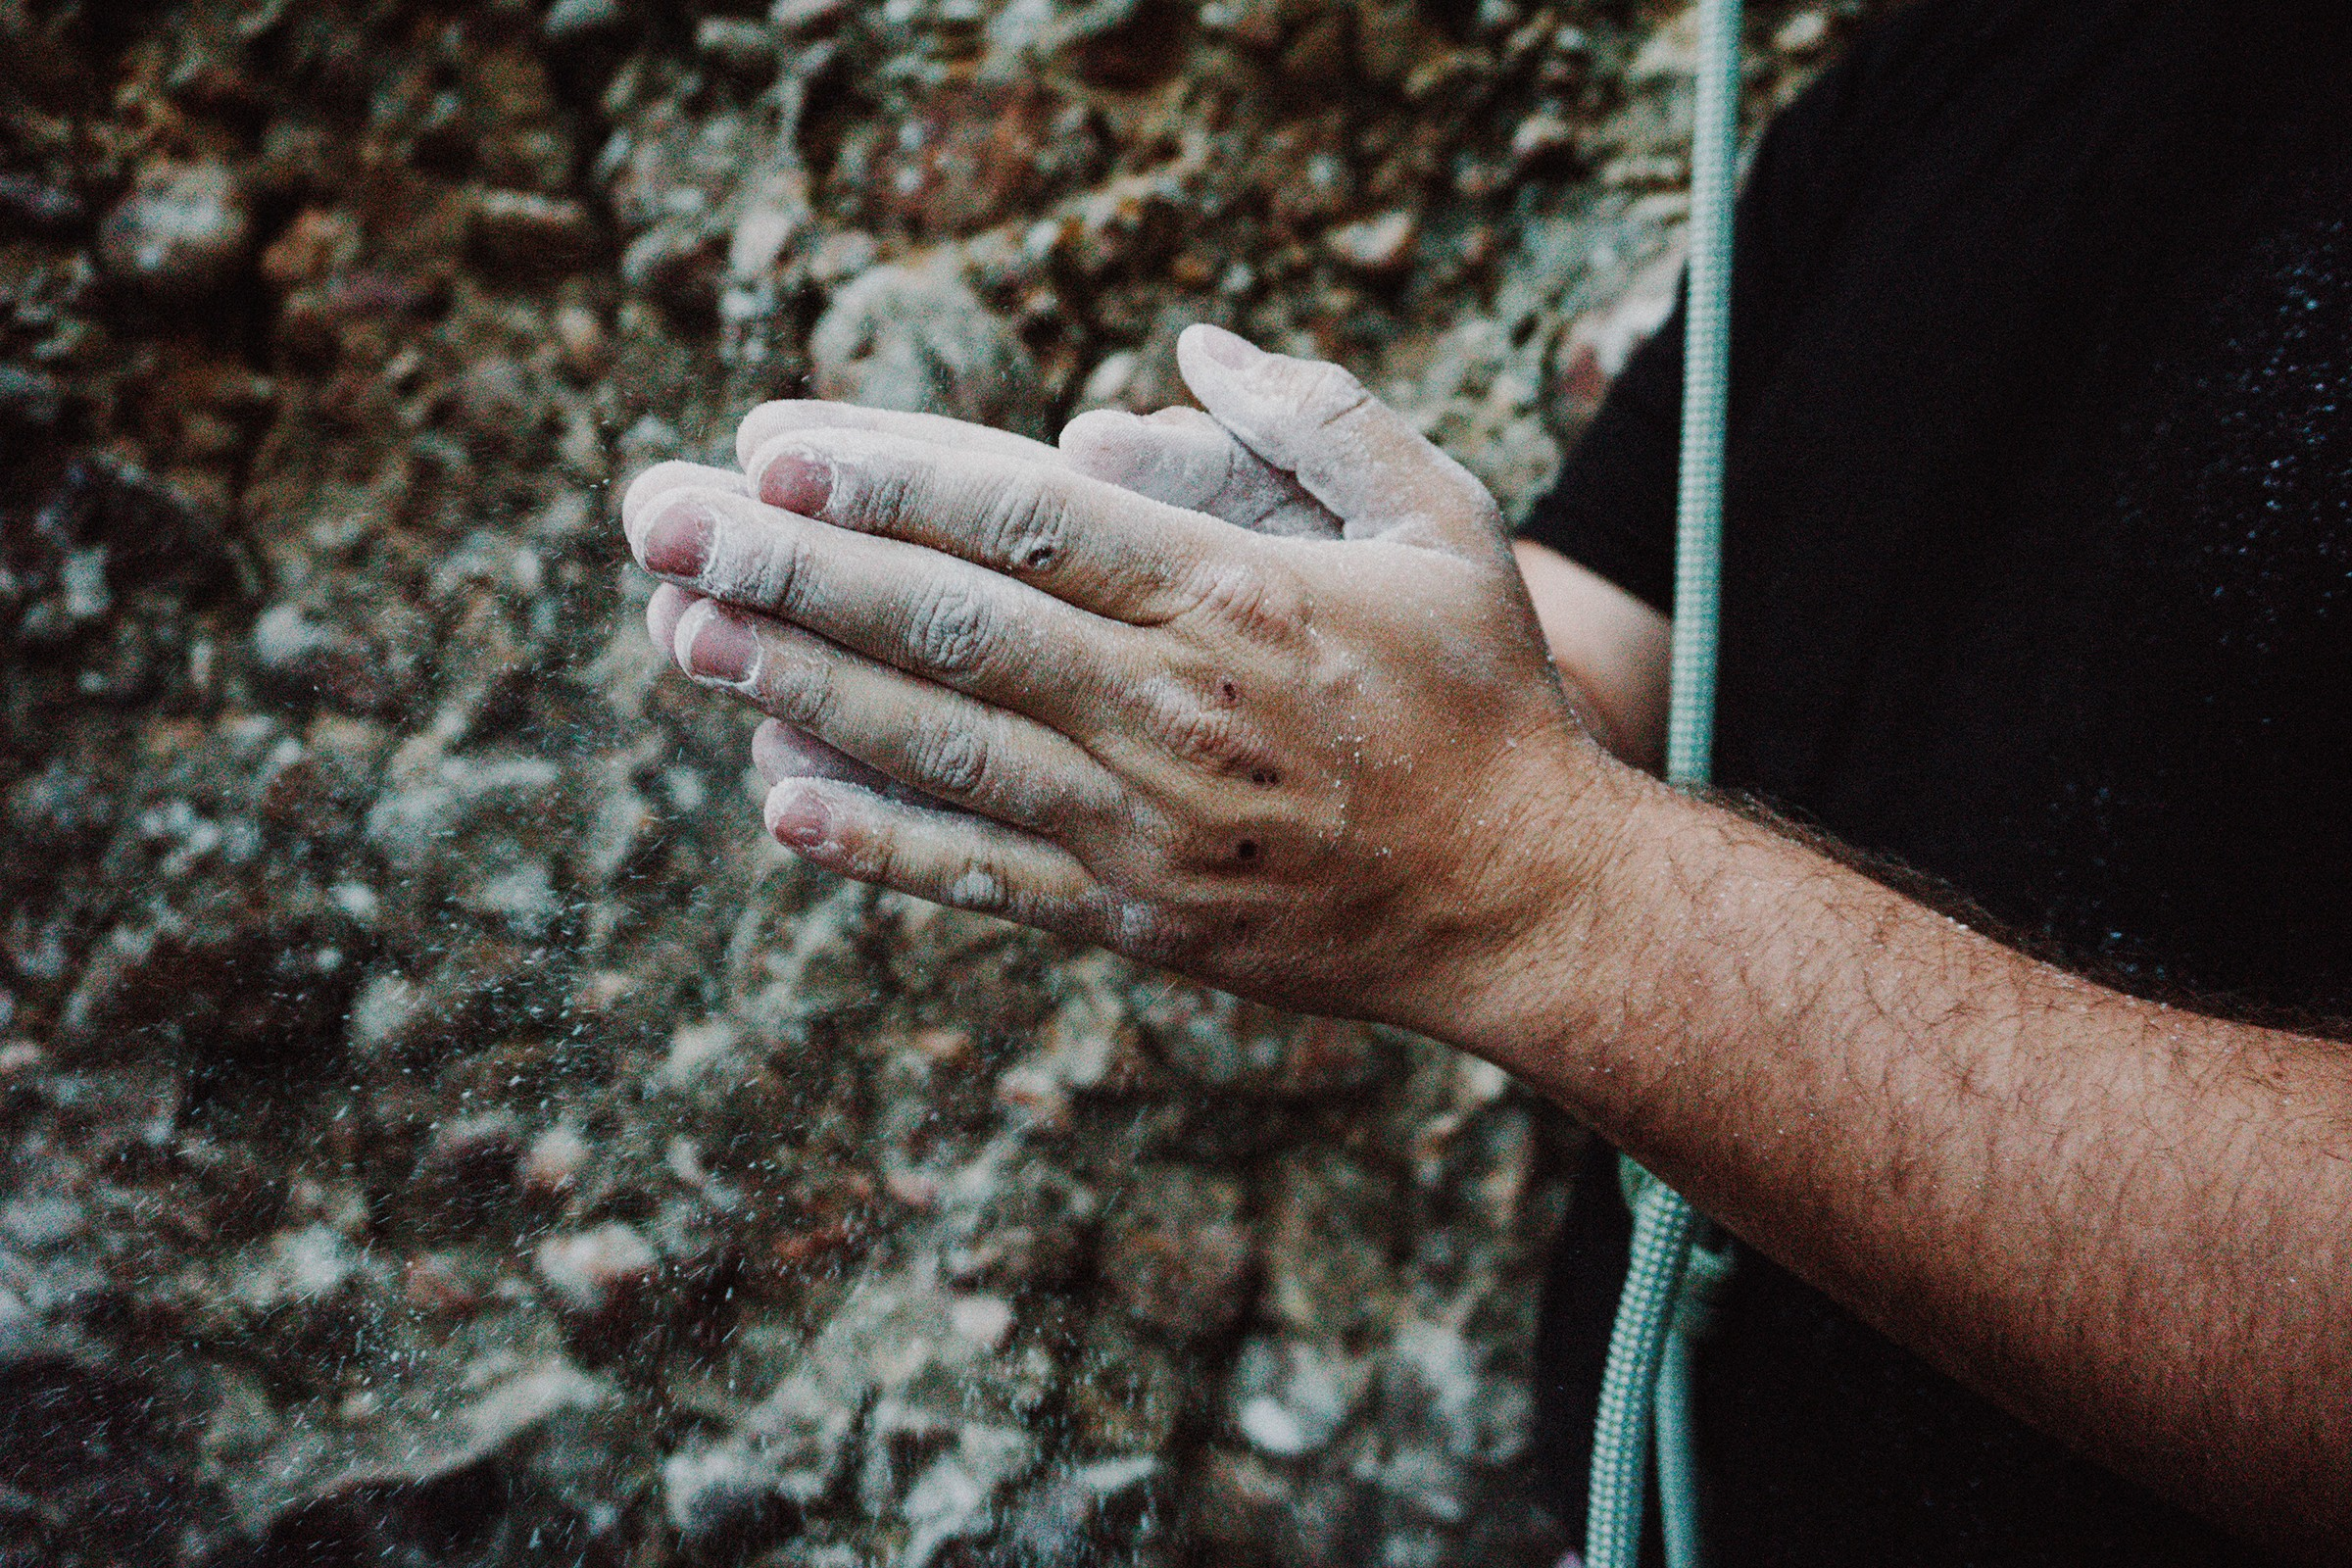 Rock climber's hands cover with chalk.